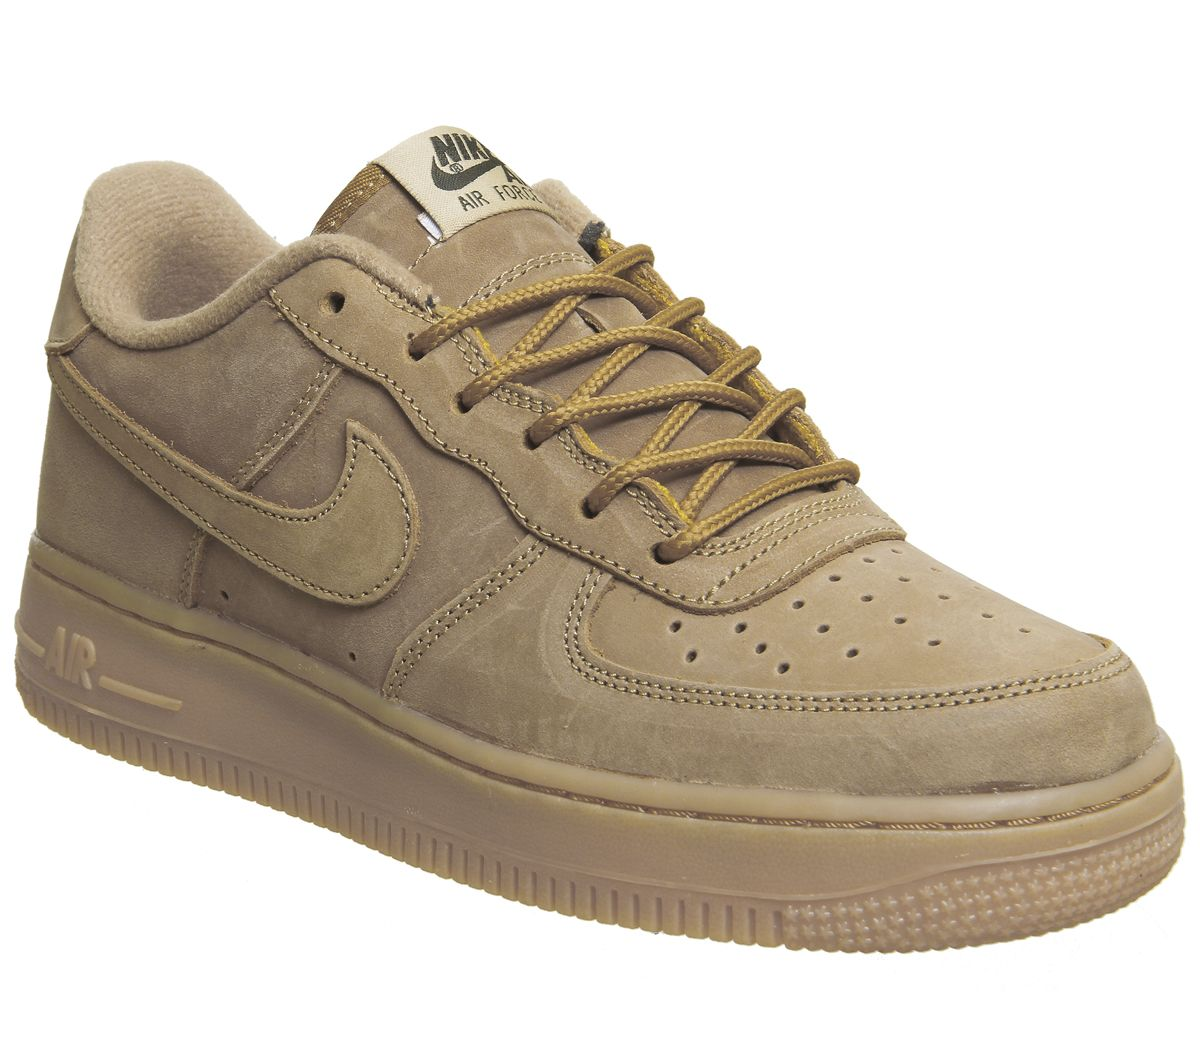 watch f15ae 32aac Nike Air Force 1 Trainers Flax Flax Gum Light Brown - Hers trainers